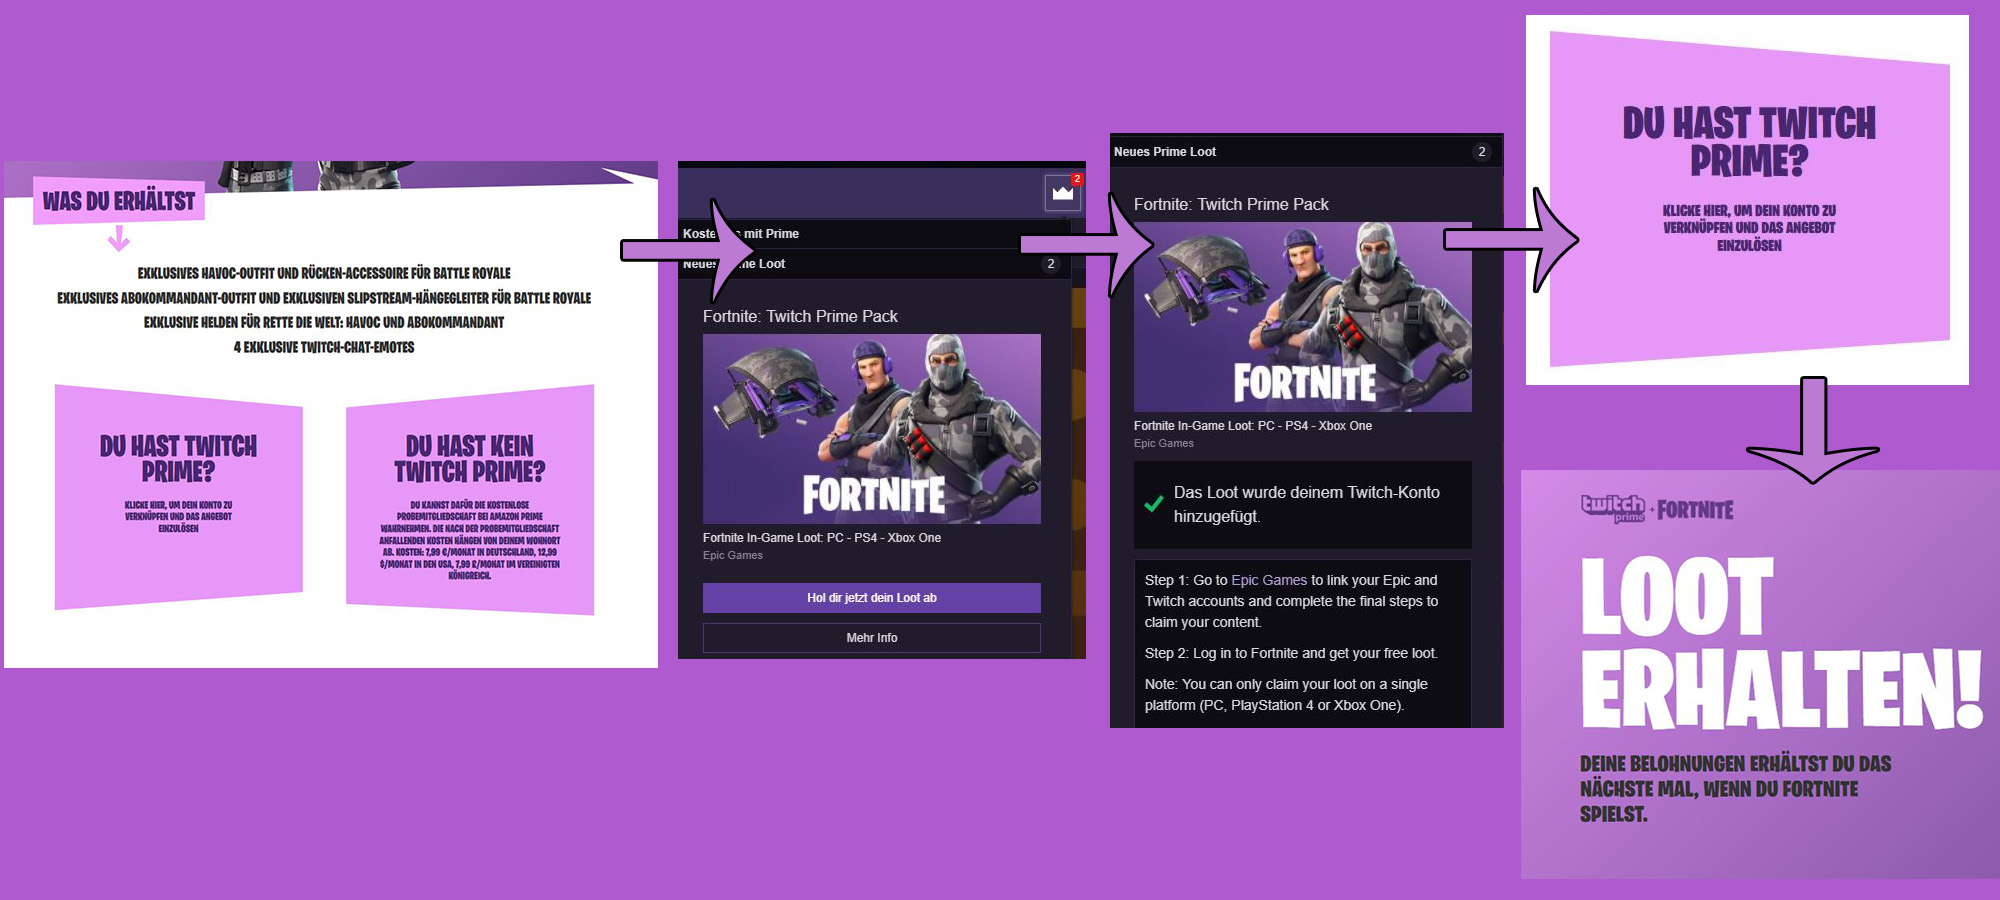 Fortnite bietet Amazon Twitch Prime-Abonnenten exklusiven Loot